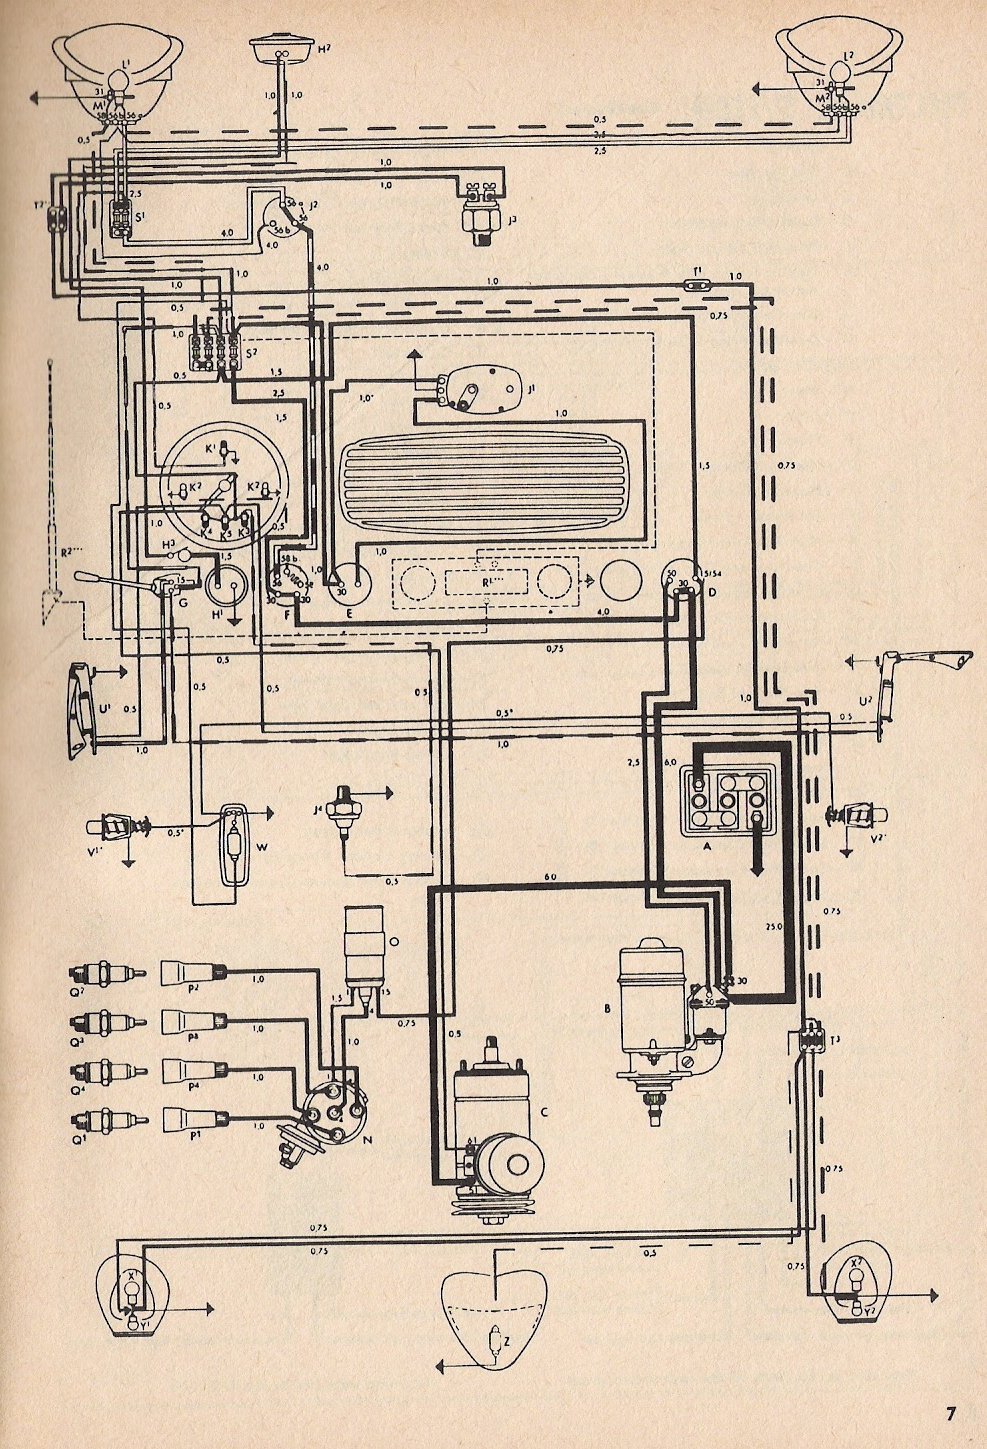 hight resolution of 72 vw bus diagram wiring diagram for professional u2022 rh bestbreweries co 1972 vw engine diagram 1972 vw engine diagram